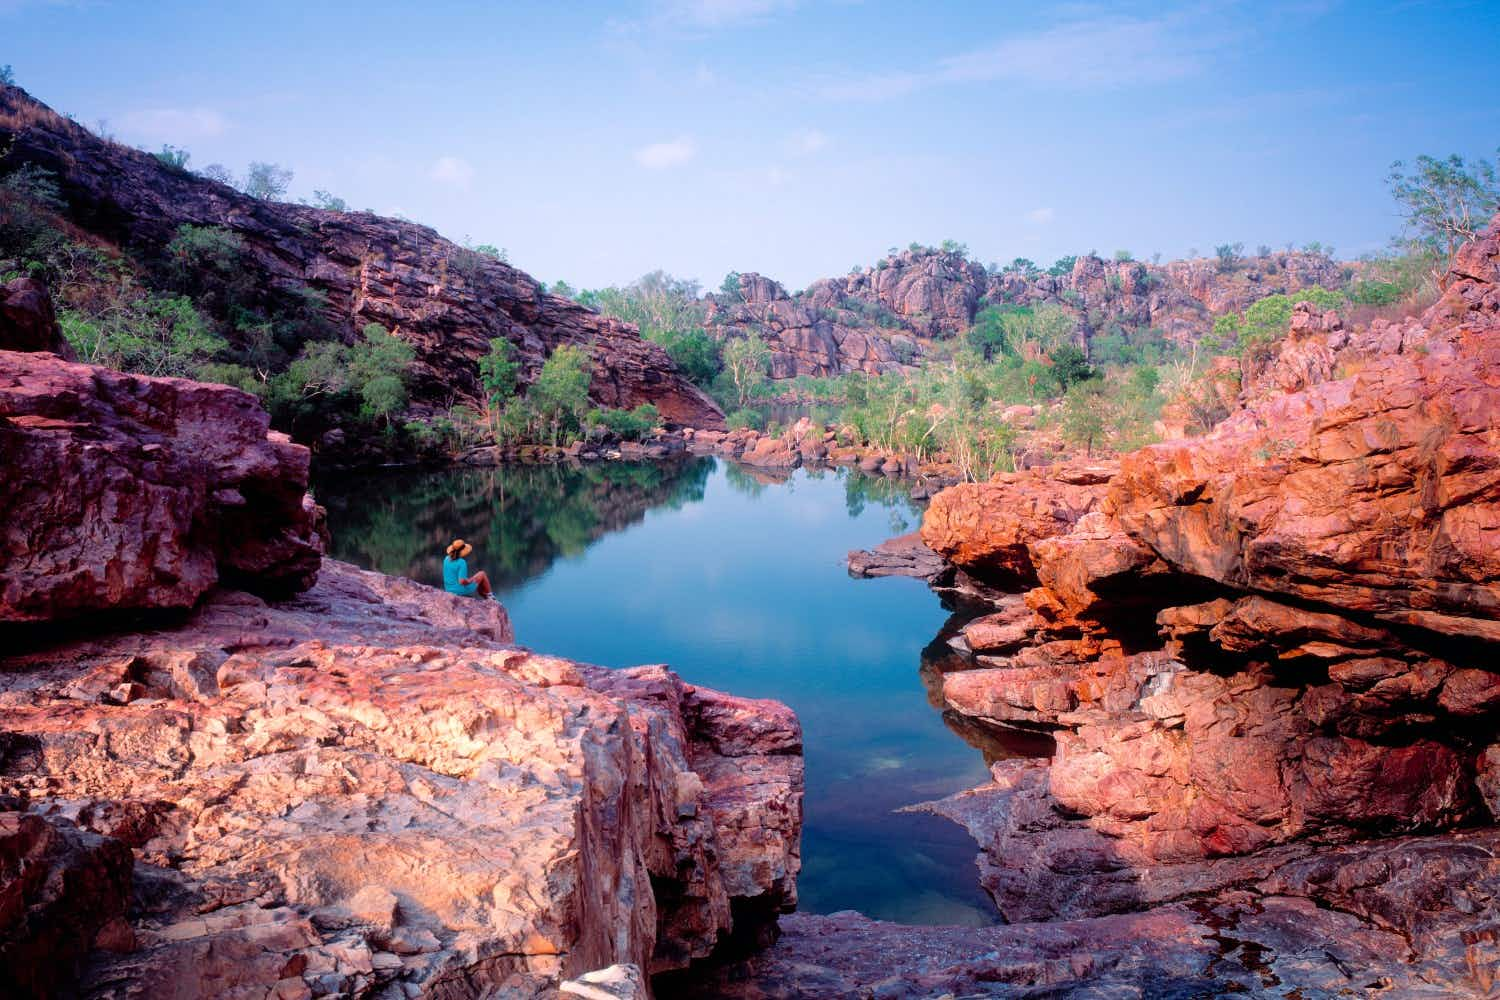 Australia's Kakadu National Park is looking for a new manager